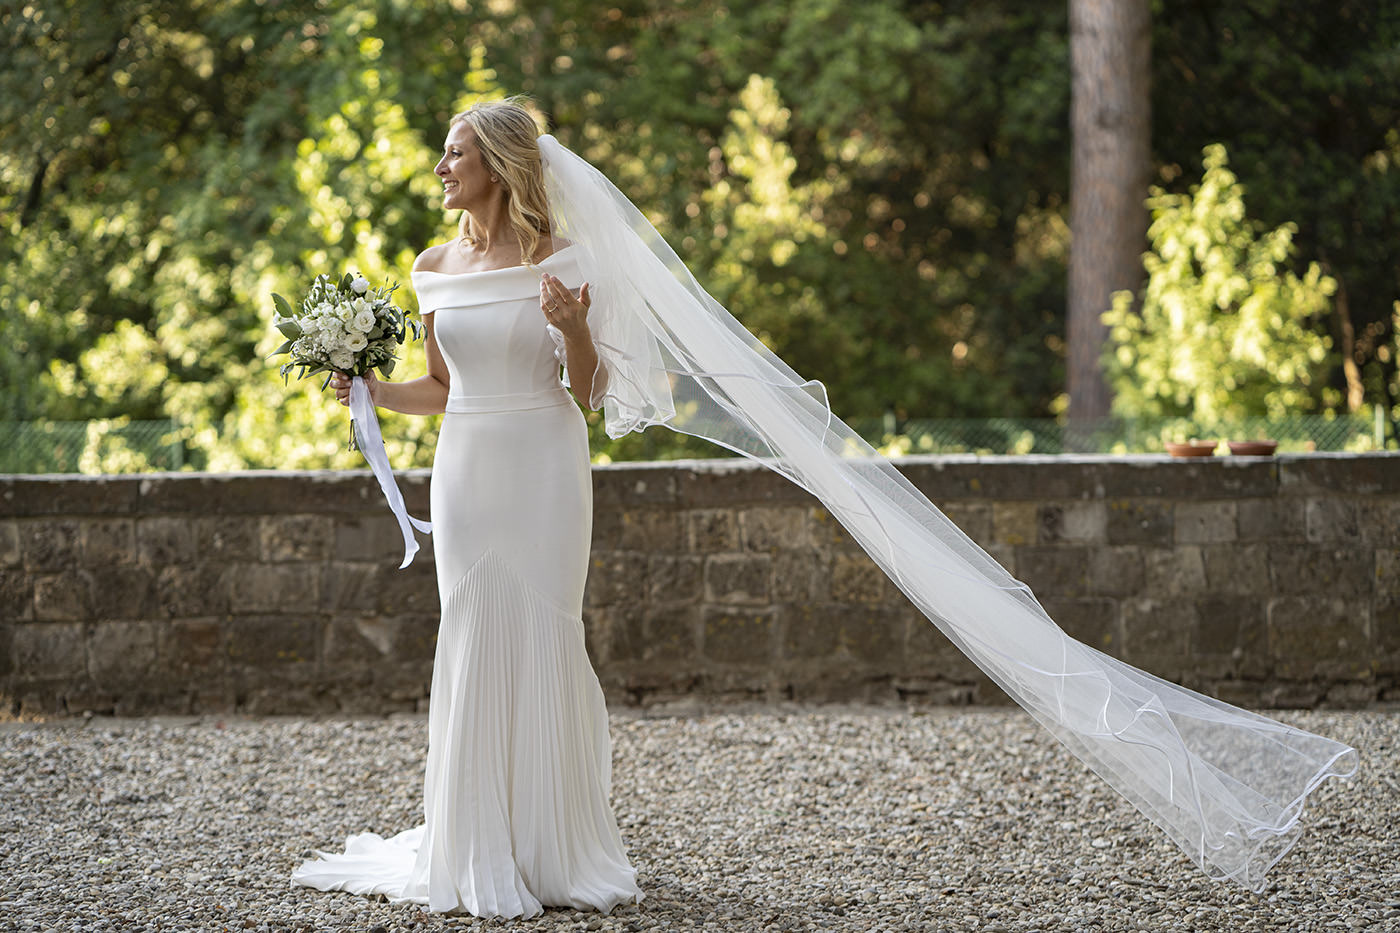 Tuscan Wedding Photo Shoots At Palagio Castle by Duccio Argentini